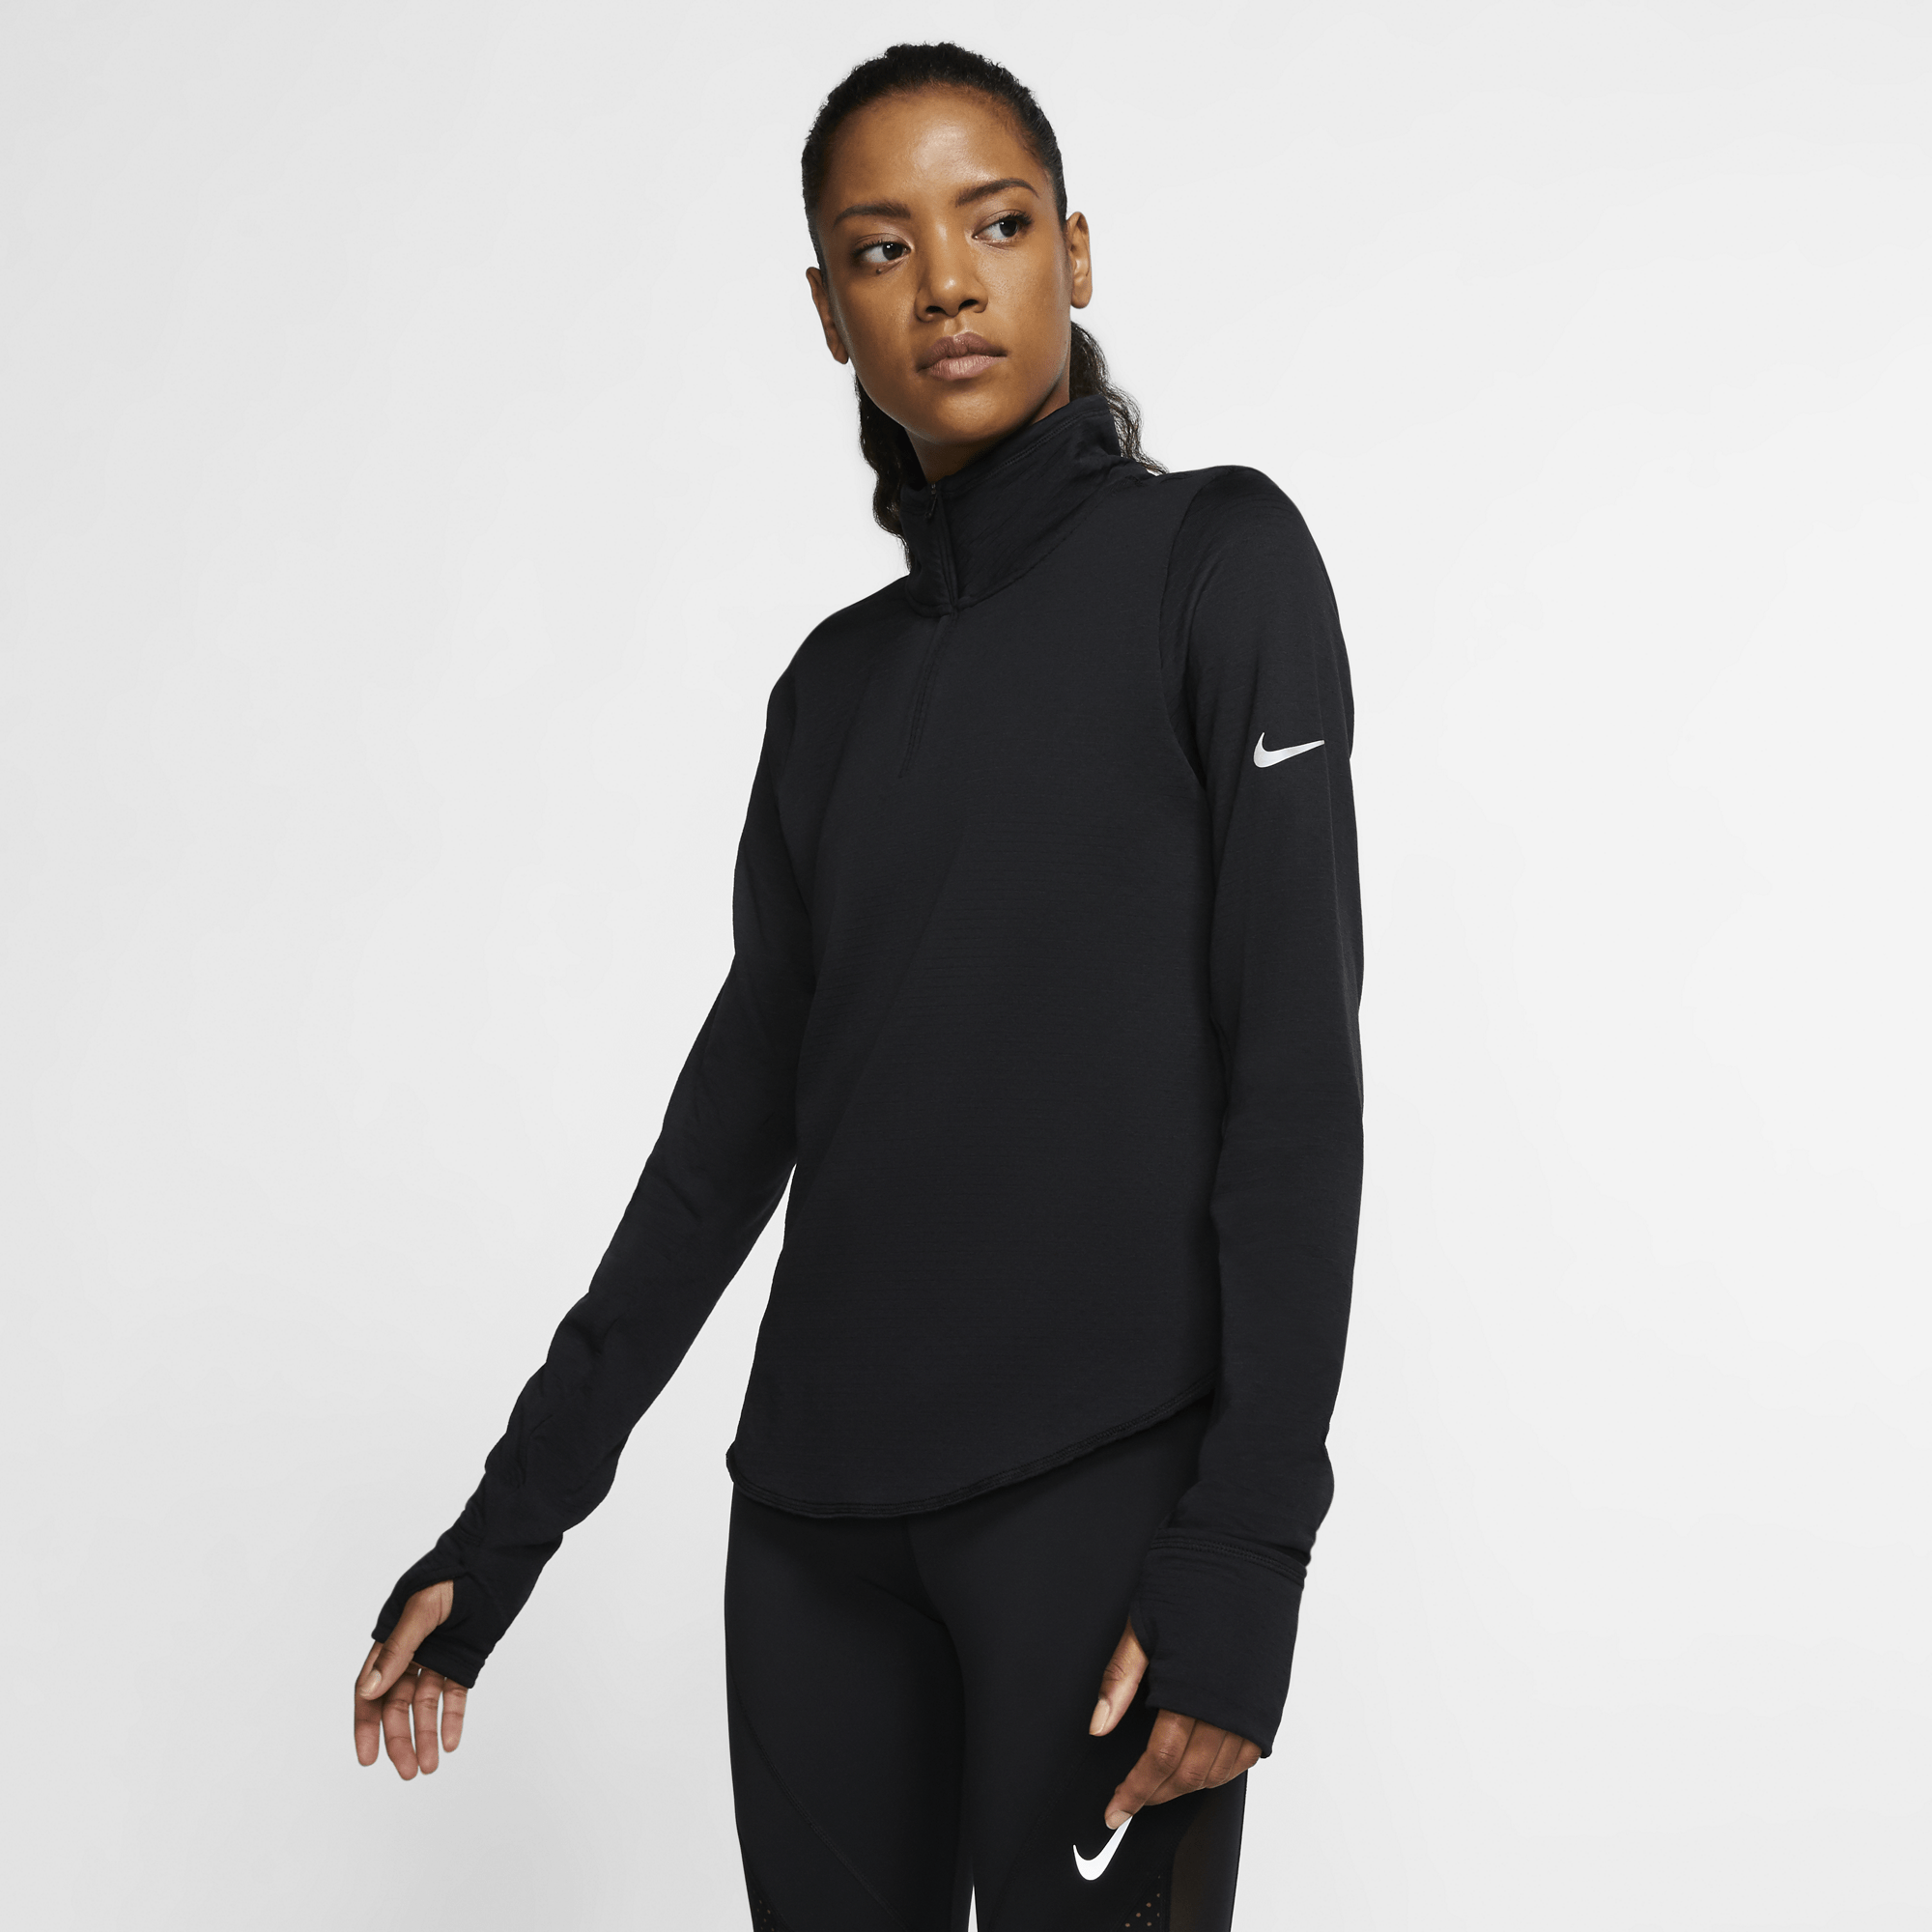 Nike Womens Sphere Element Half Zip Top - Sole Motive